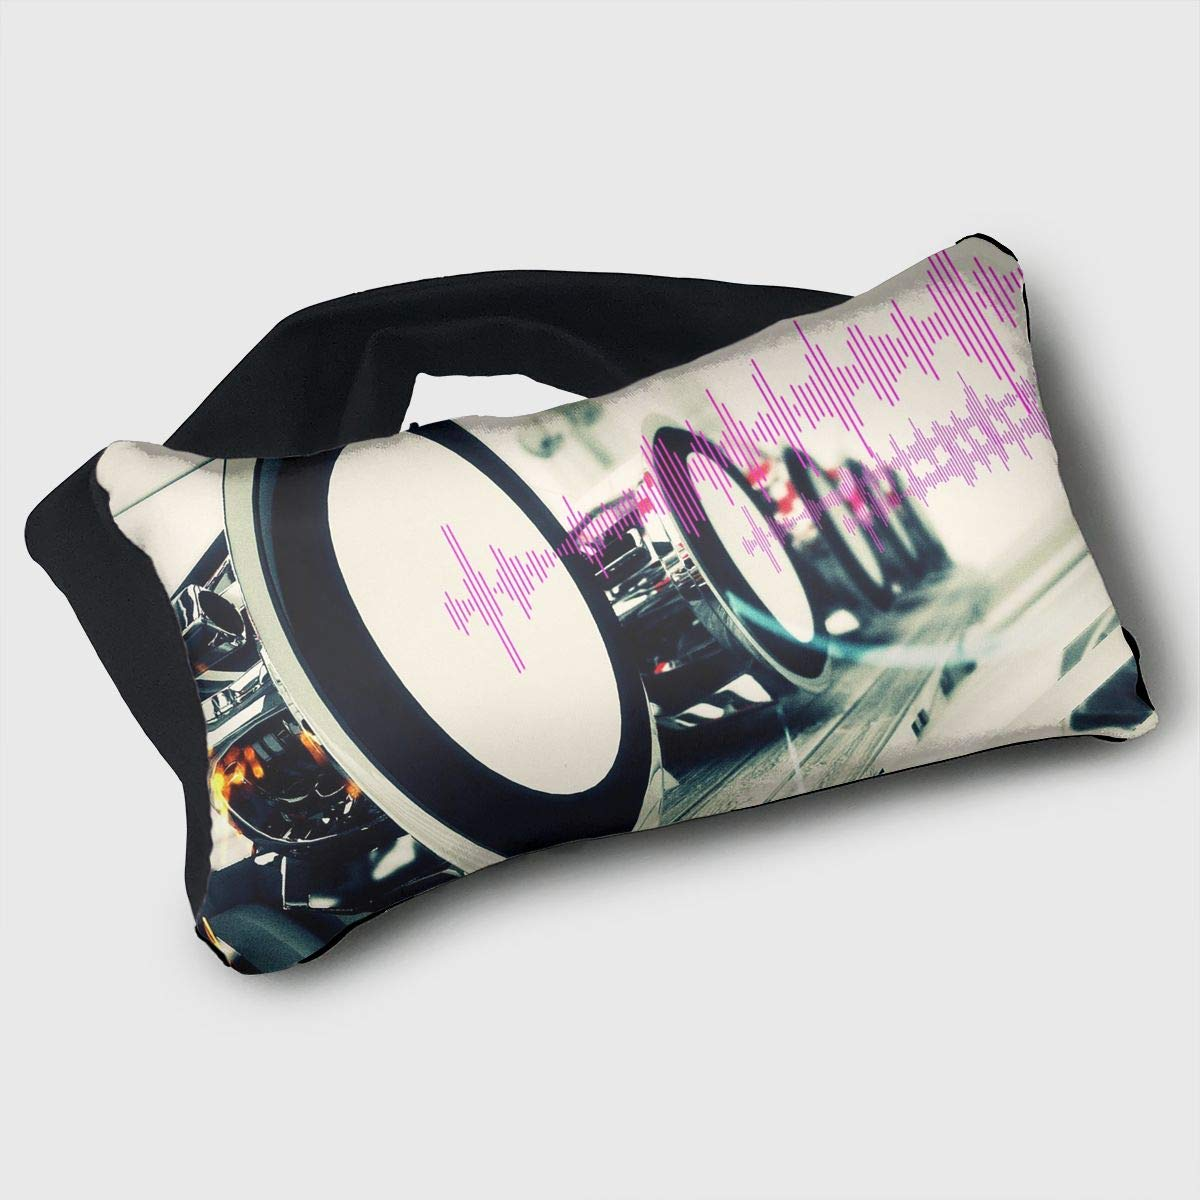 Voyage Travel Pillow Eye Mask 2 in 1 Portable Neck Support Scarf Music Sound Wave Ergonomic Naps Rest Pillows Sleeper Versatile for Airplanes Car Train Bus Home Office